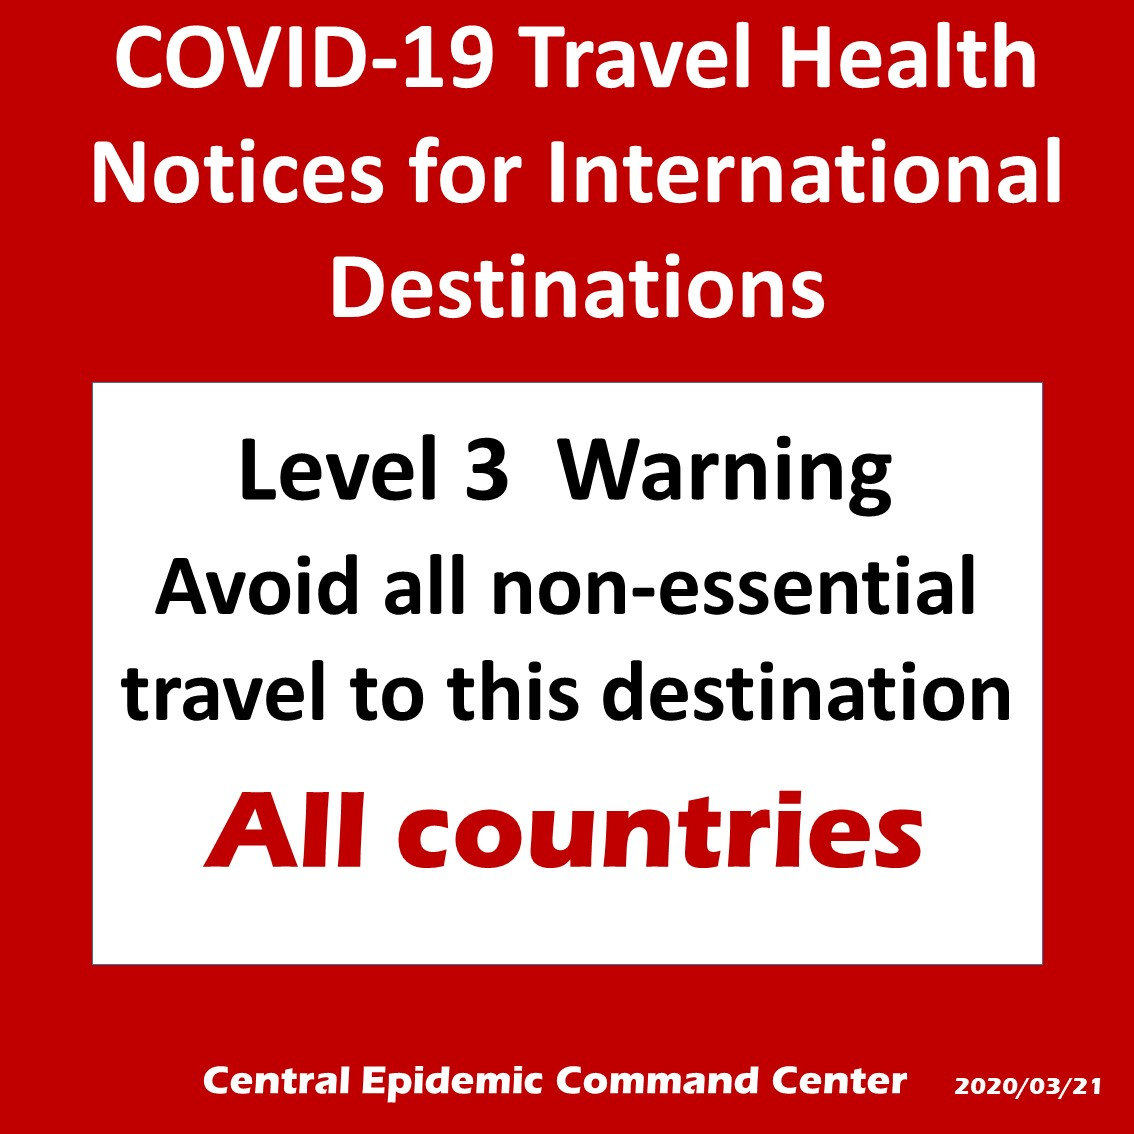 Travel Health Notices for International Destinations